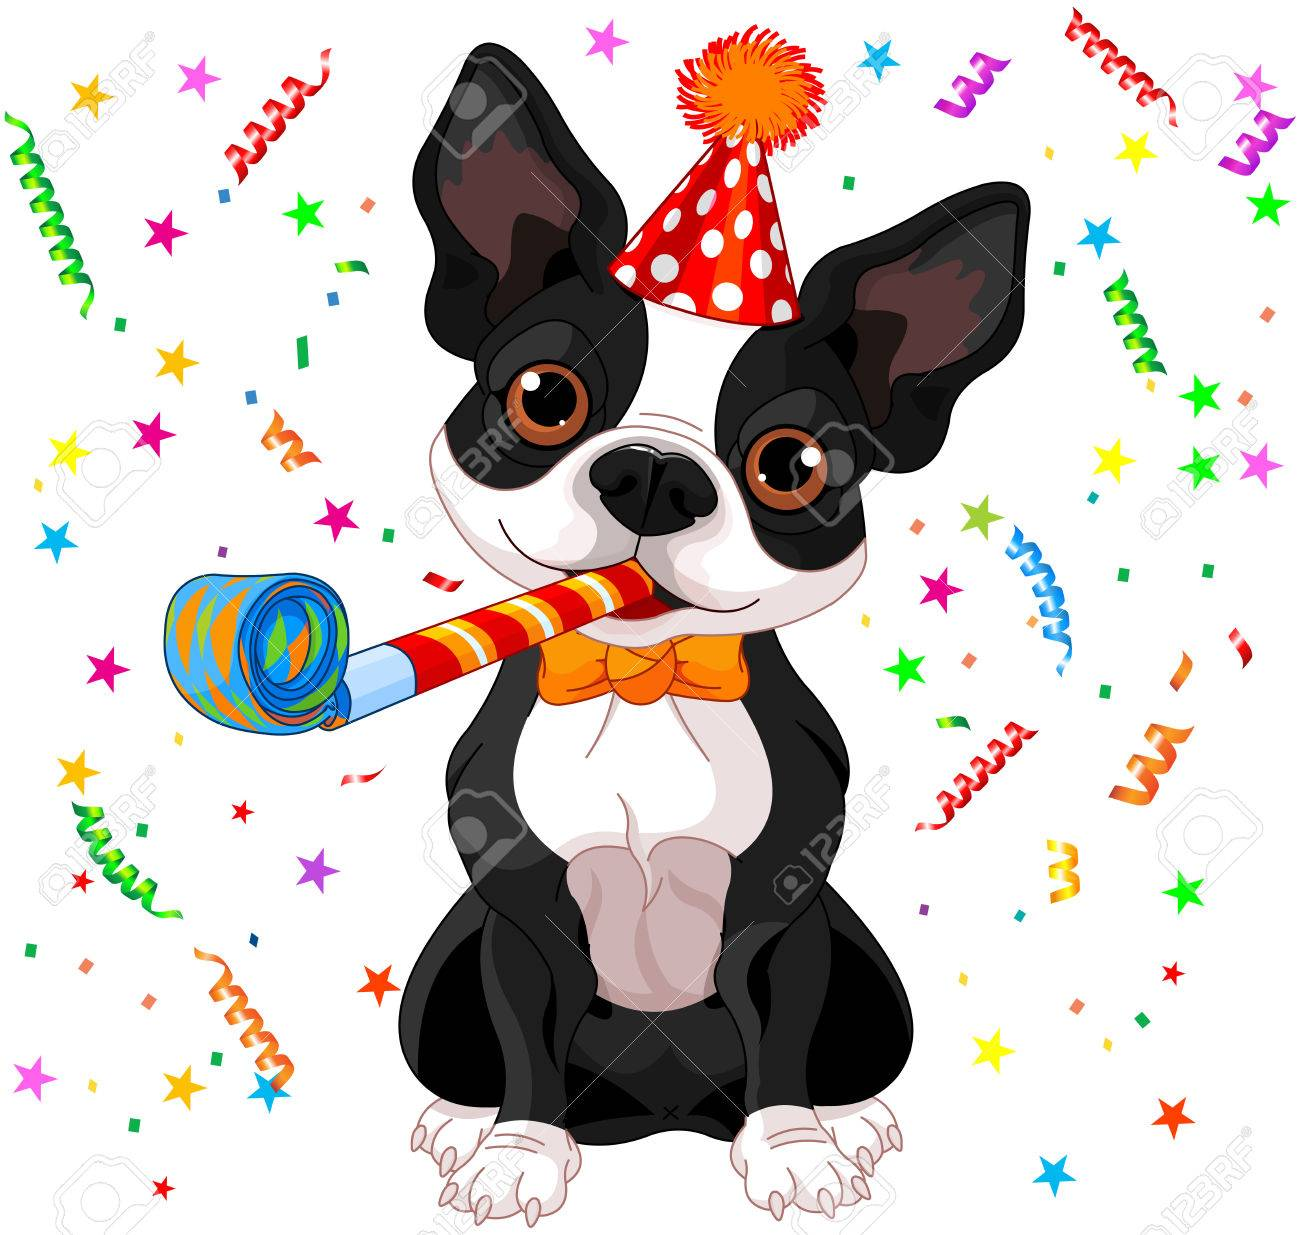 Aldo : Adopté ! - Page 6 35588778-illustration-of-cute-boston-terrier-celebrating